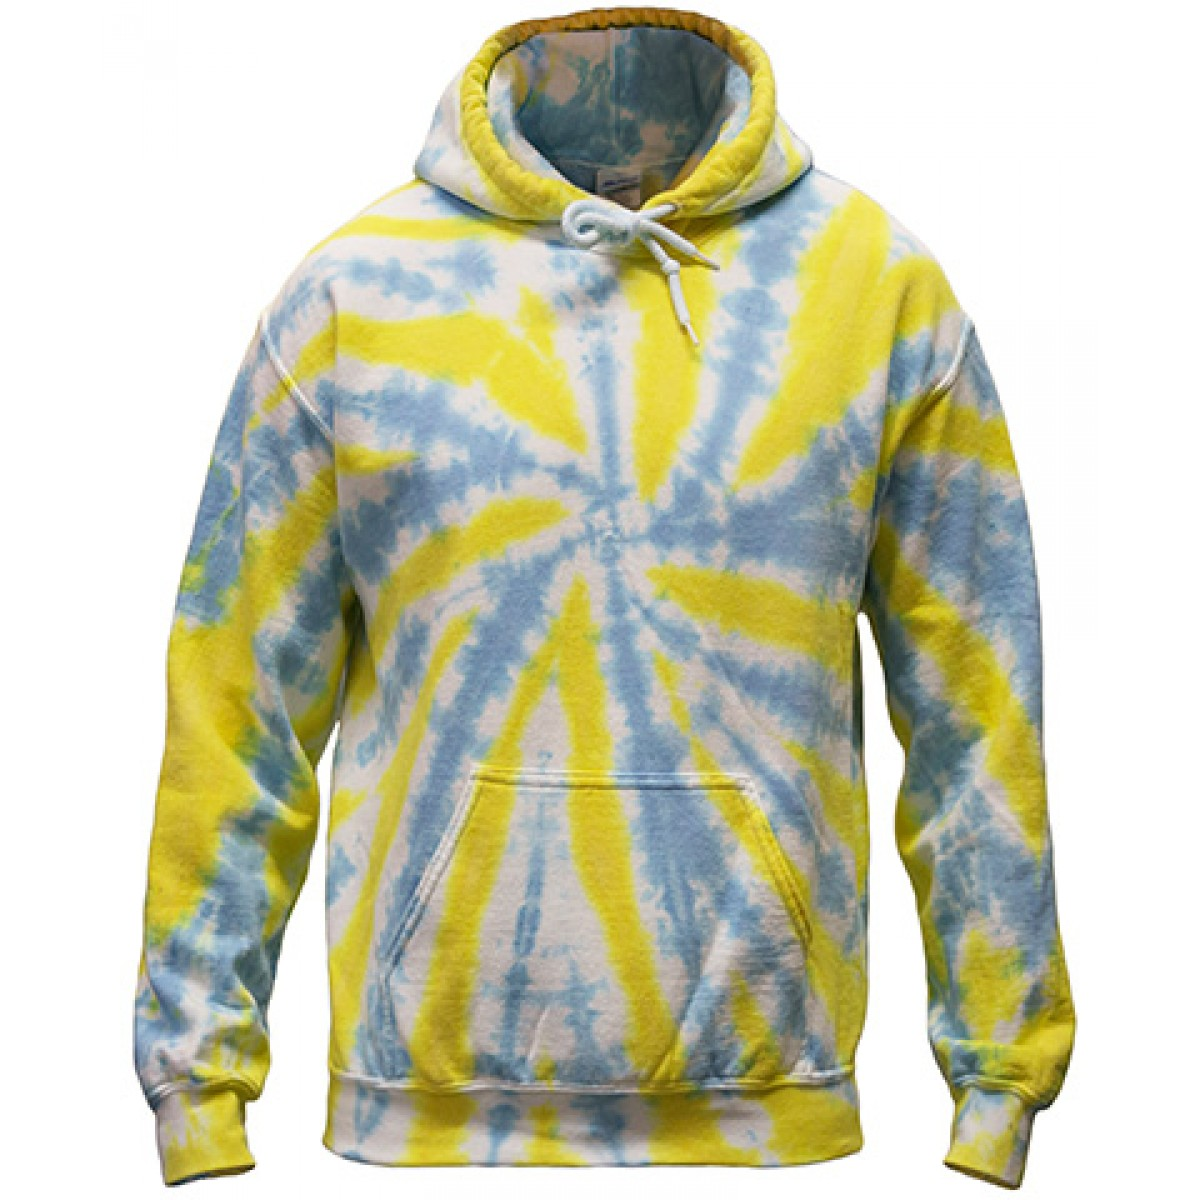 Tie-Dye Pullover Hooded Sweatshirt-Blue/Yellow-S